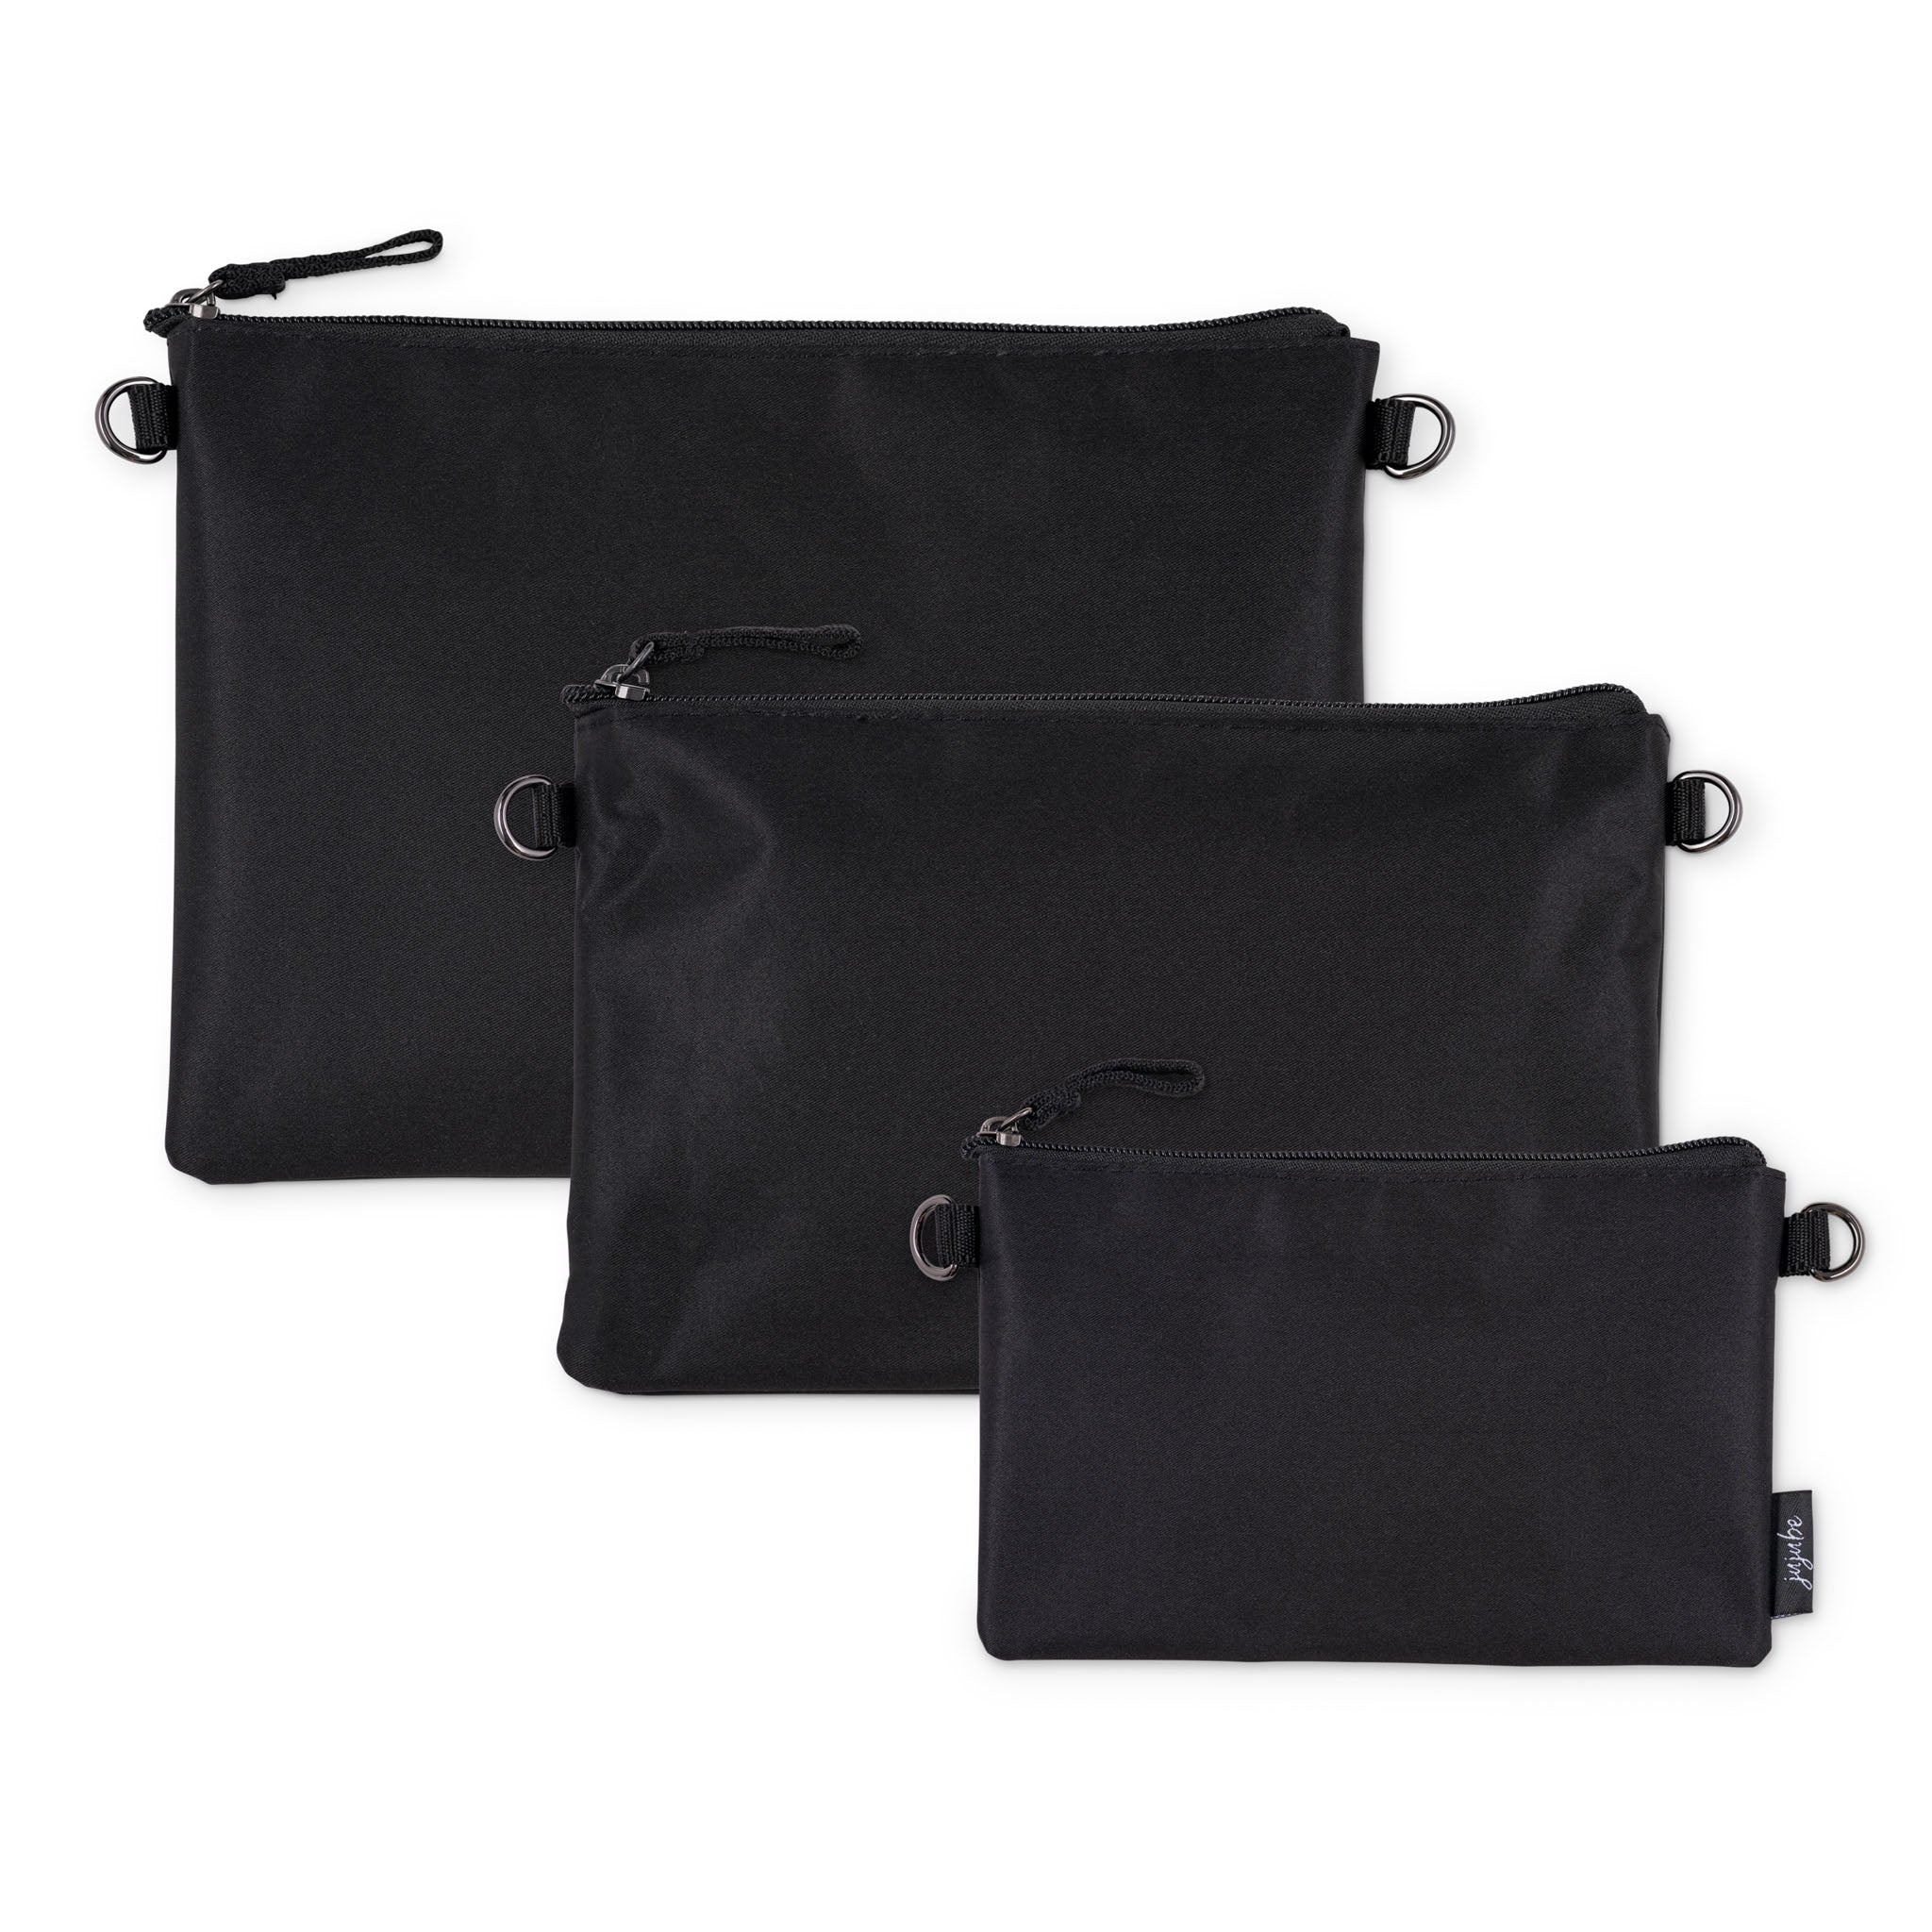 3-Piece Dry/Wet Bags Set